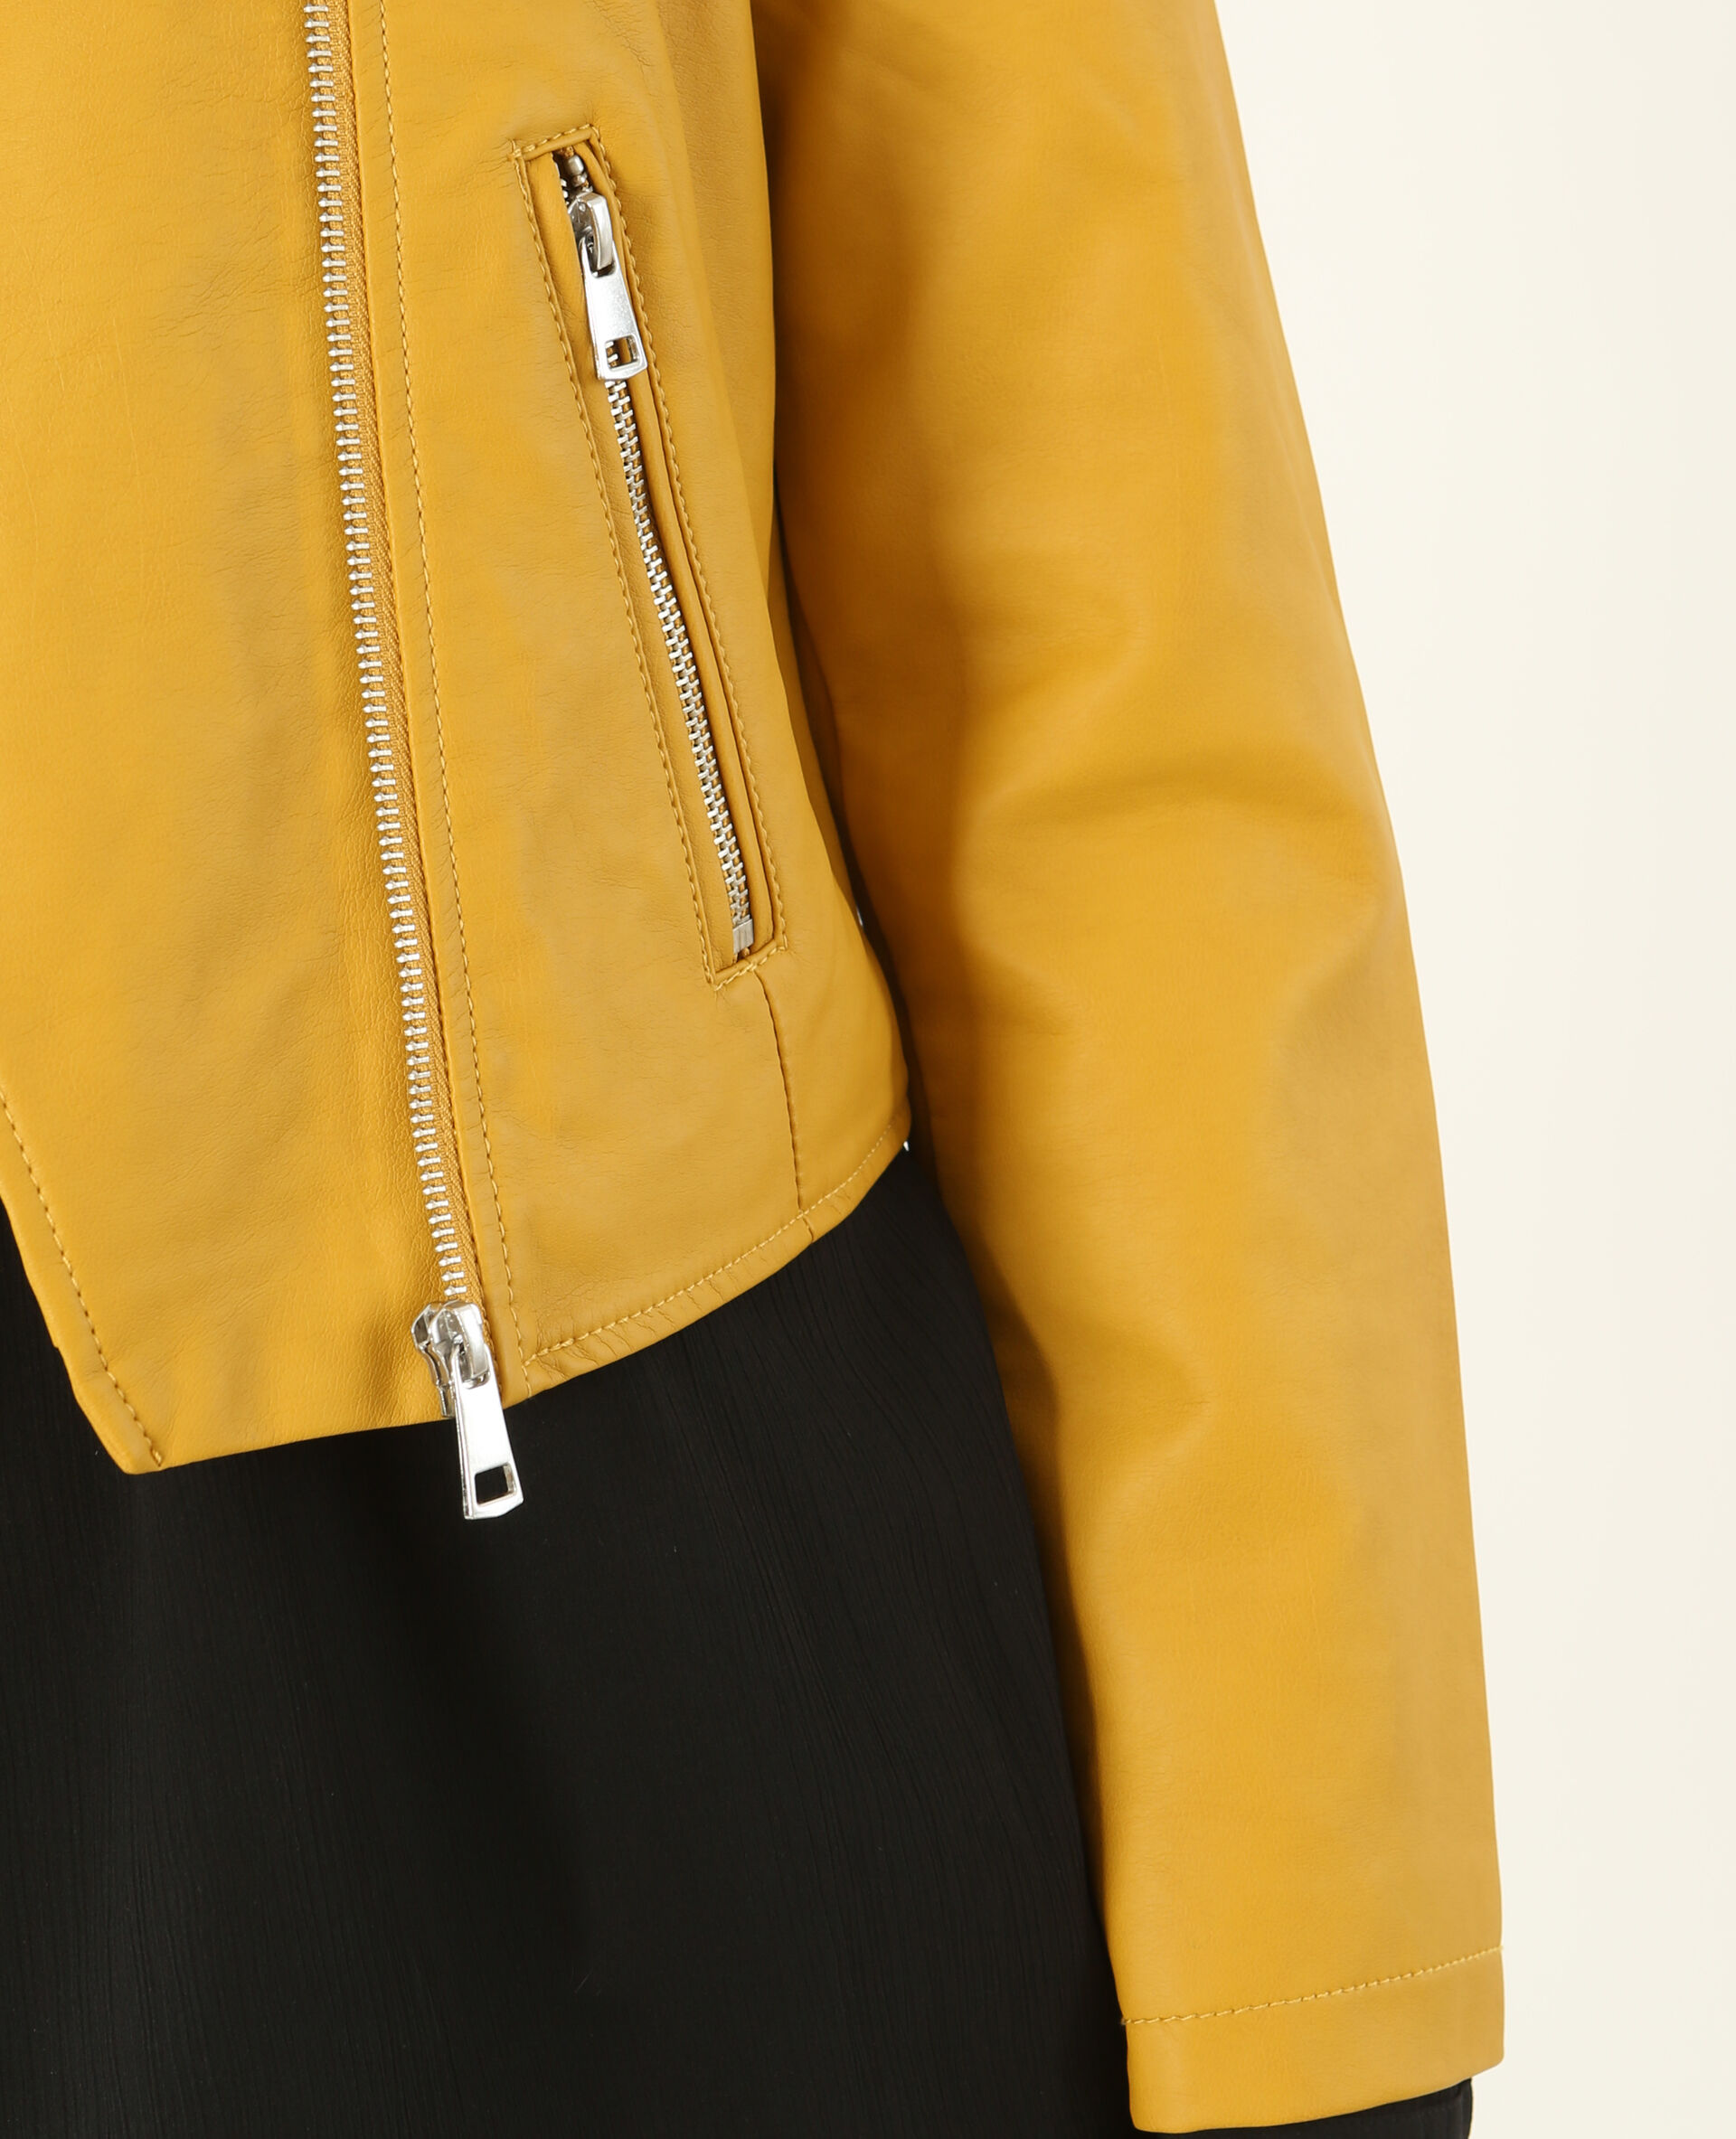 Veste simili cuir jaune moutarde